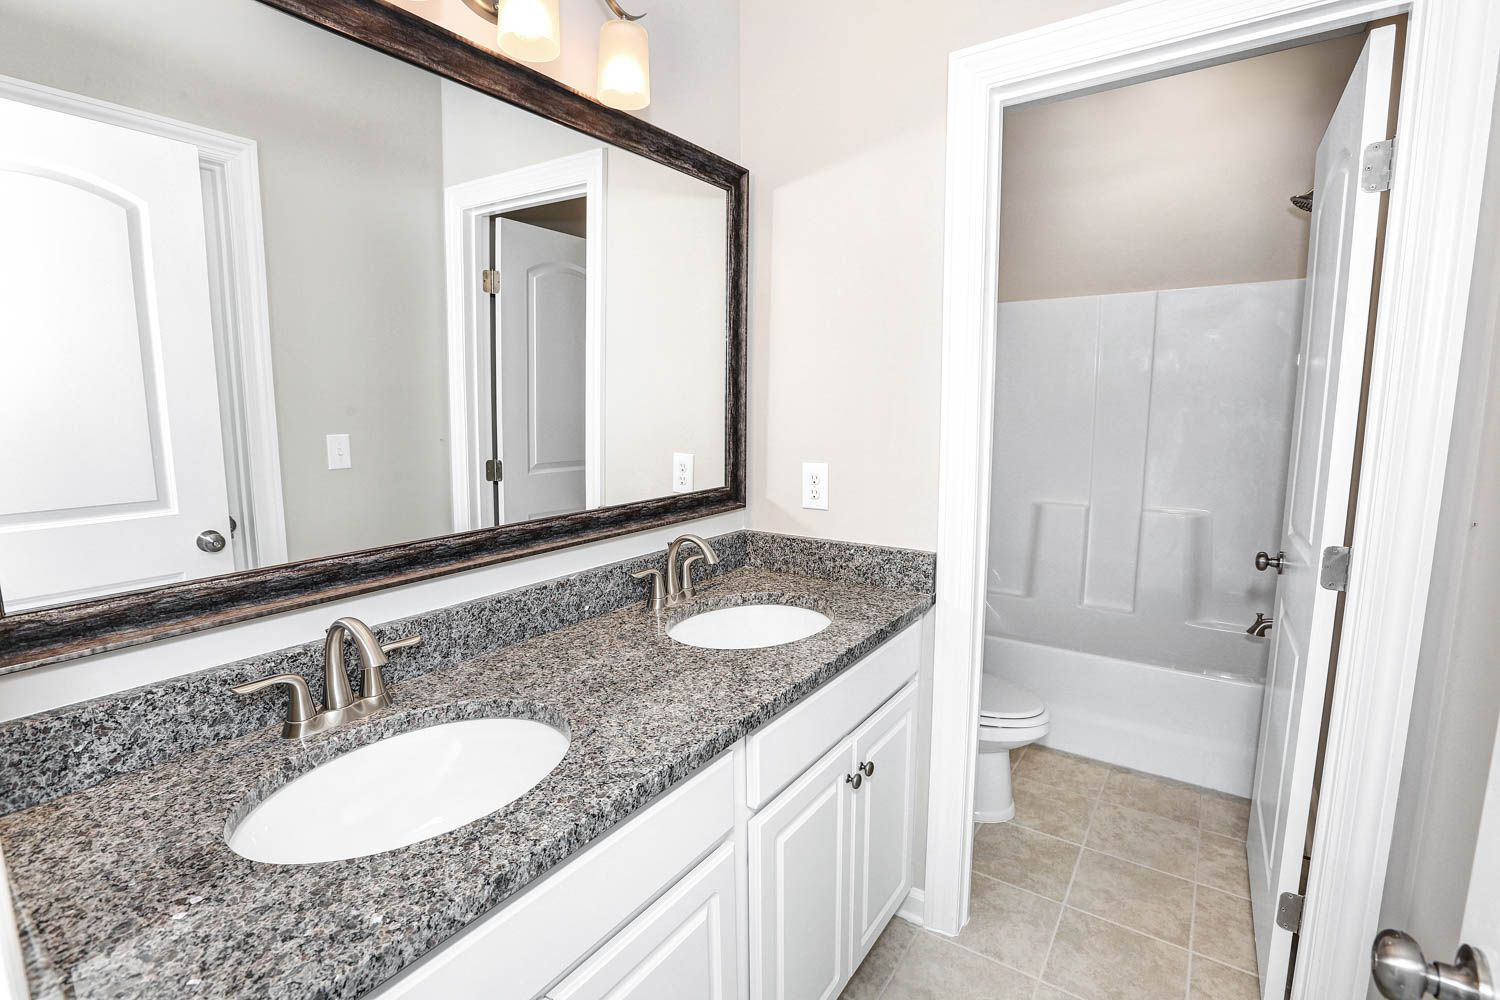 Bathroom featured in The Shelburne By Goodall Homes in Huntsville, AL